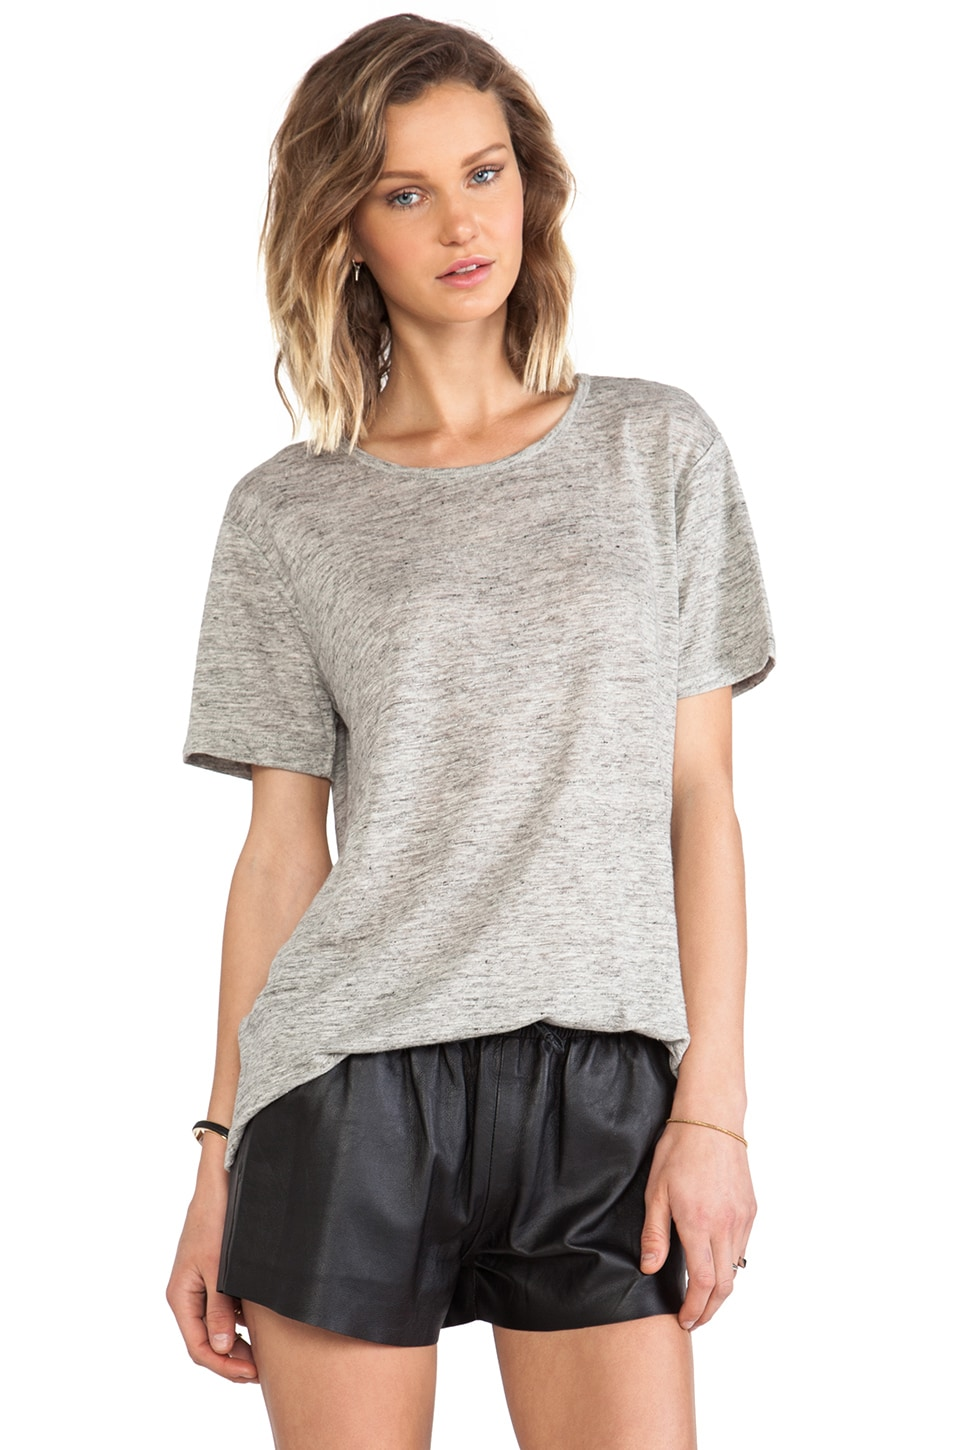 T by Alexander Wang Linen Jersey Short Sleeve Tee in Light Heather Grey